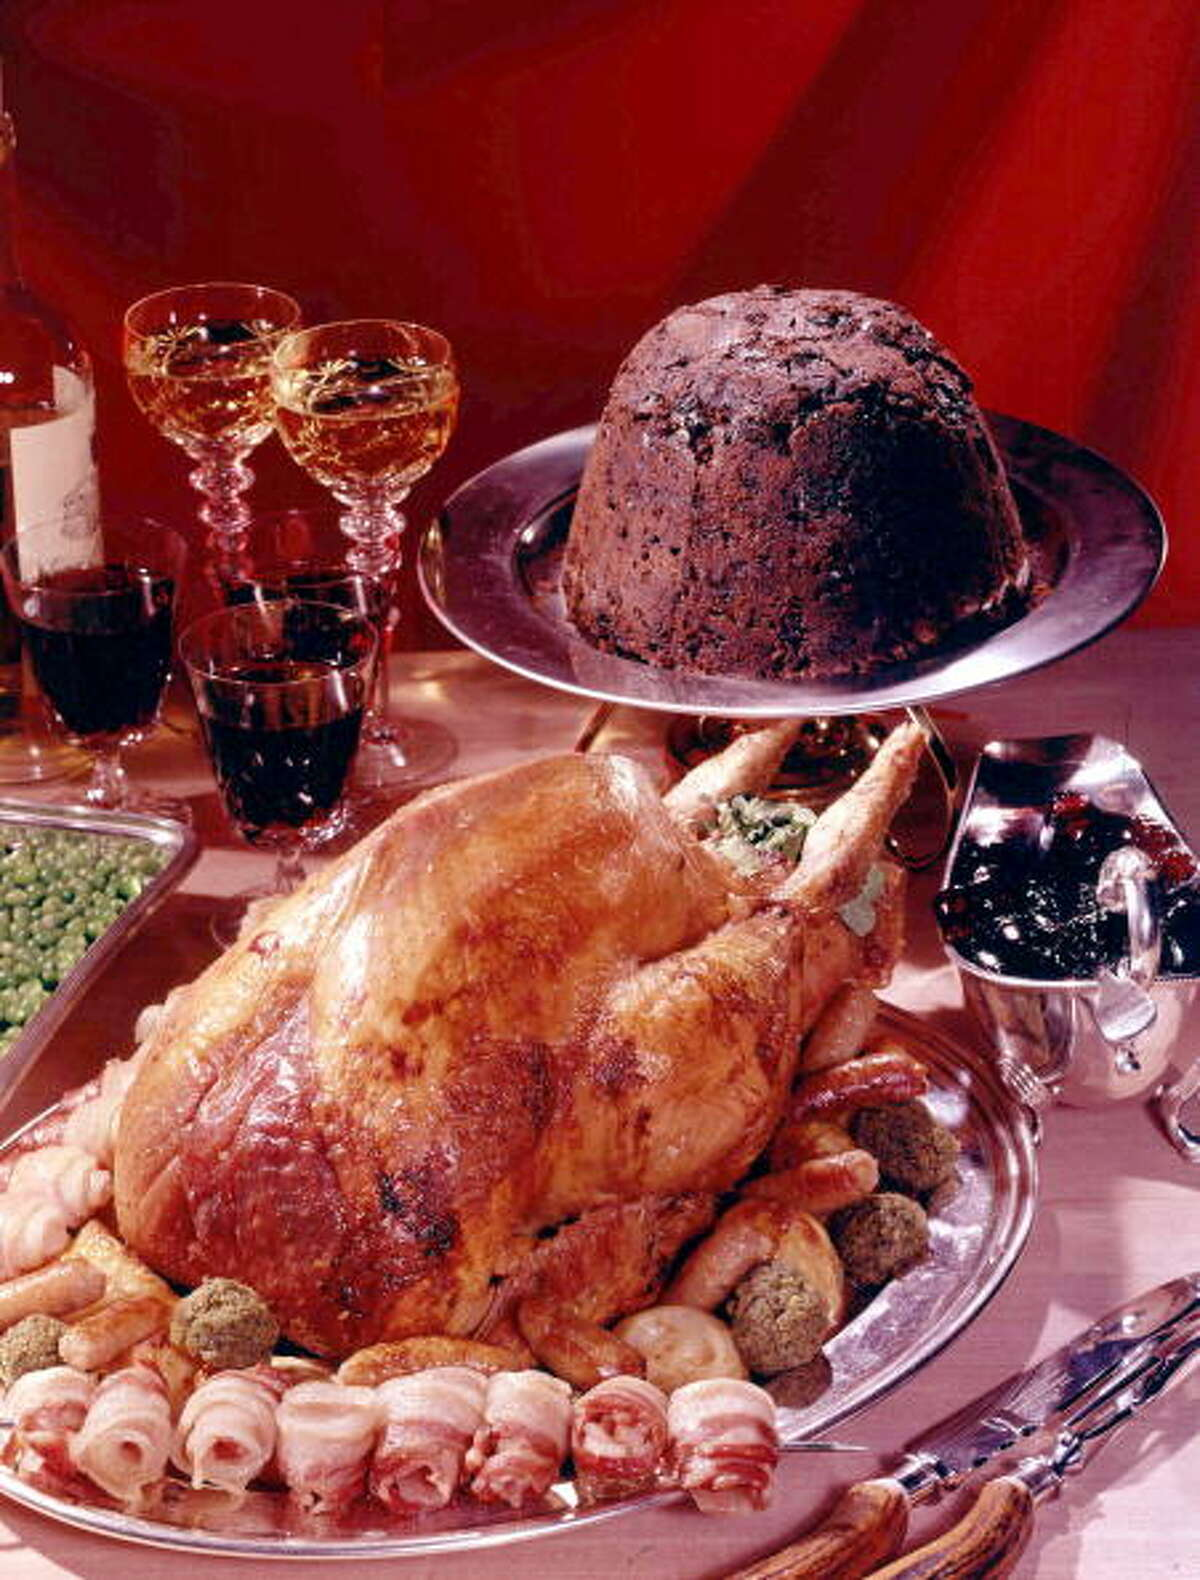 Oven roasted turkeyServing size 4 ounce (breast no skin)Calories 153Calories from fat 8